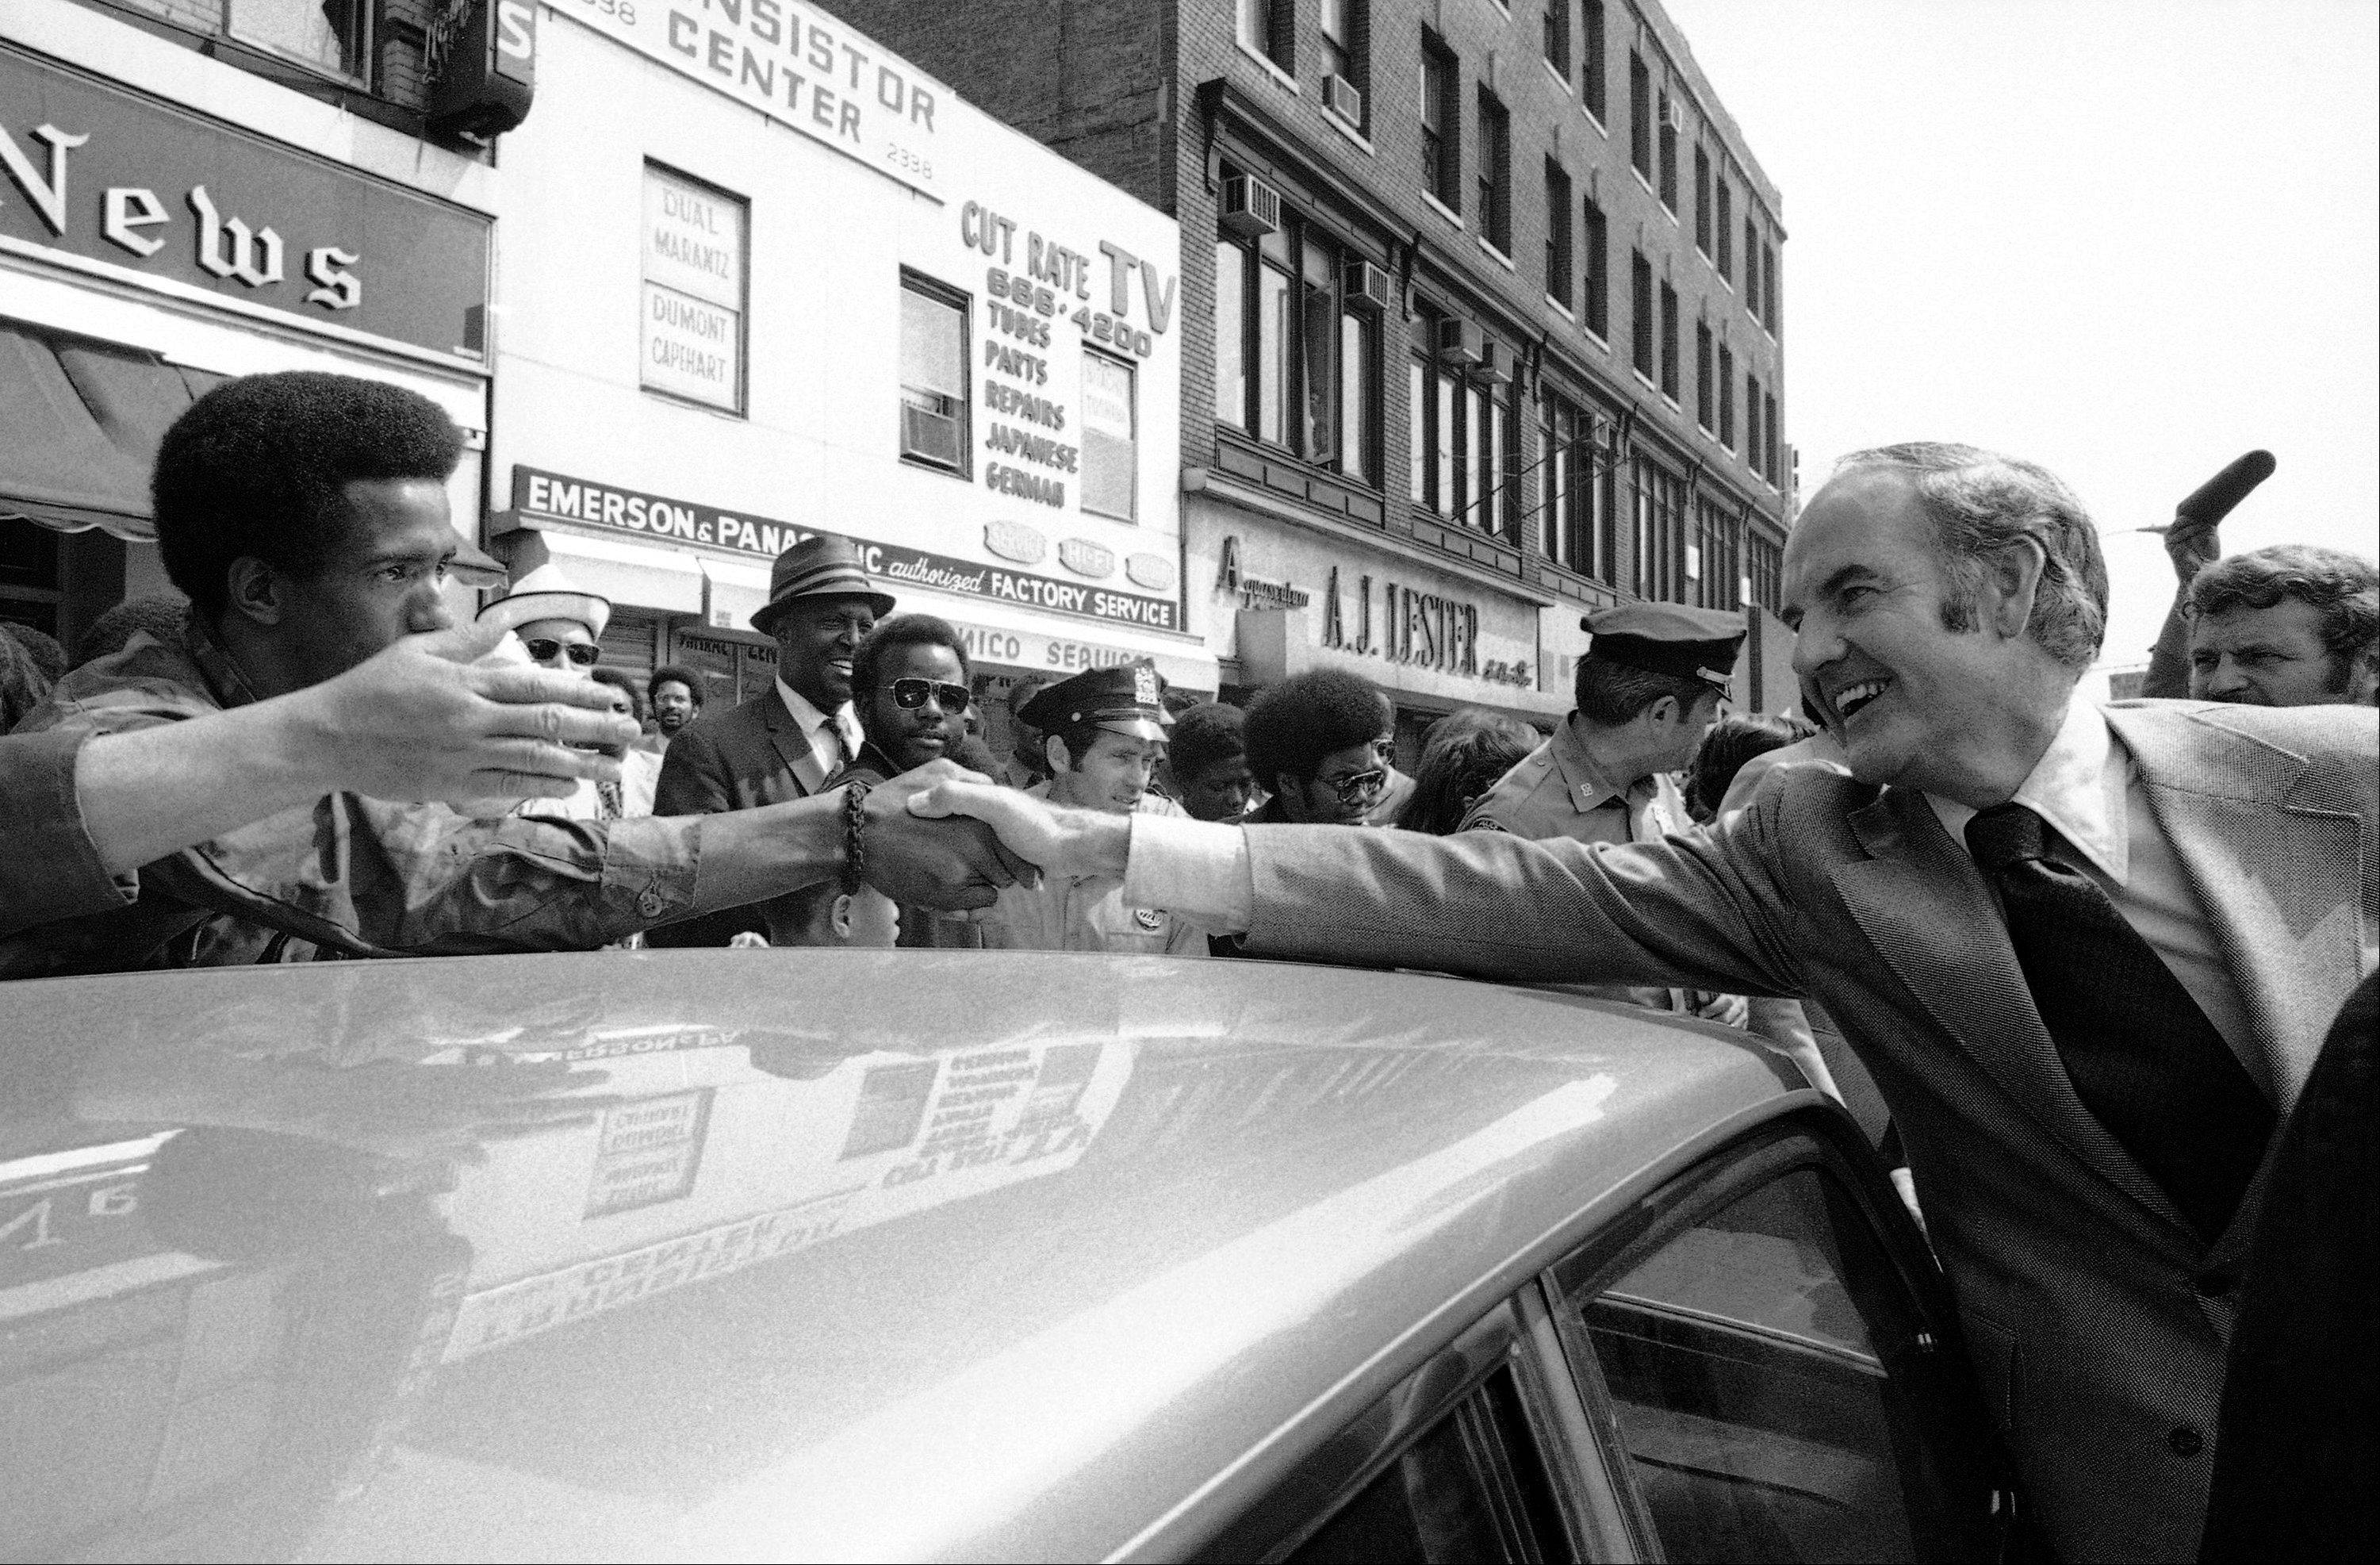 Sen. George McGovern and a New Yorker reach over a car to shake hands, during a visit by McGovern to Harlem in New York, June 9, 1972. McGovern, who is a candidate for the Democratic presidential nomination, was in Harlem to speak to editors of the Amsterdam News, a black-run newspaper.